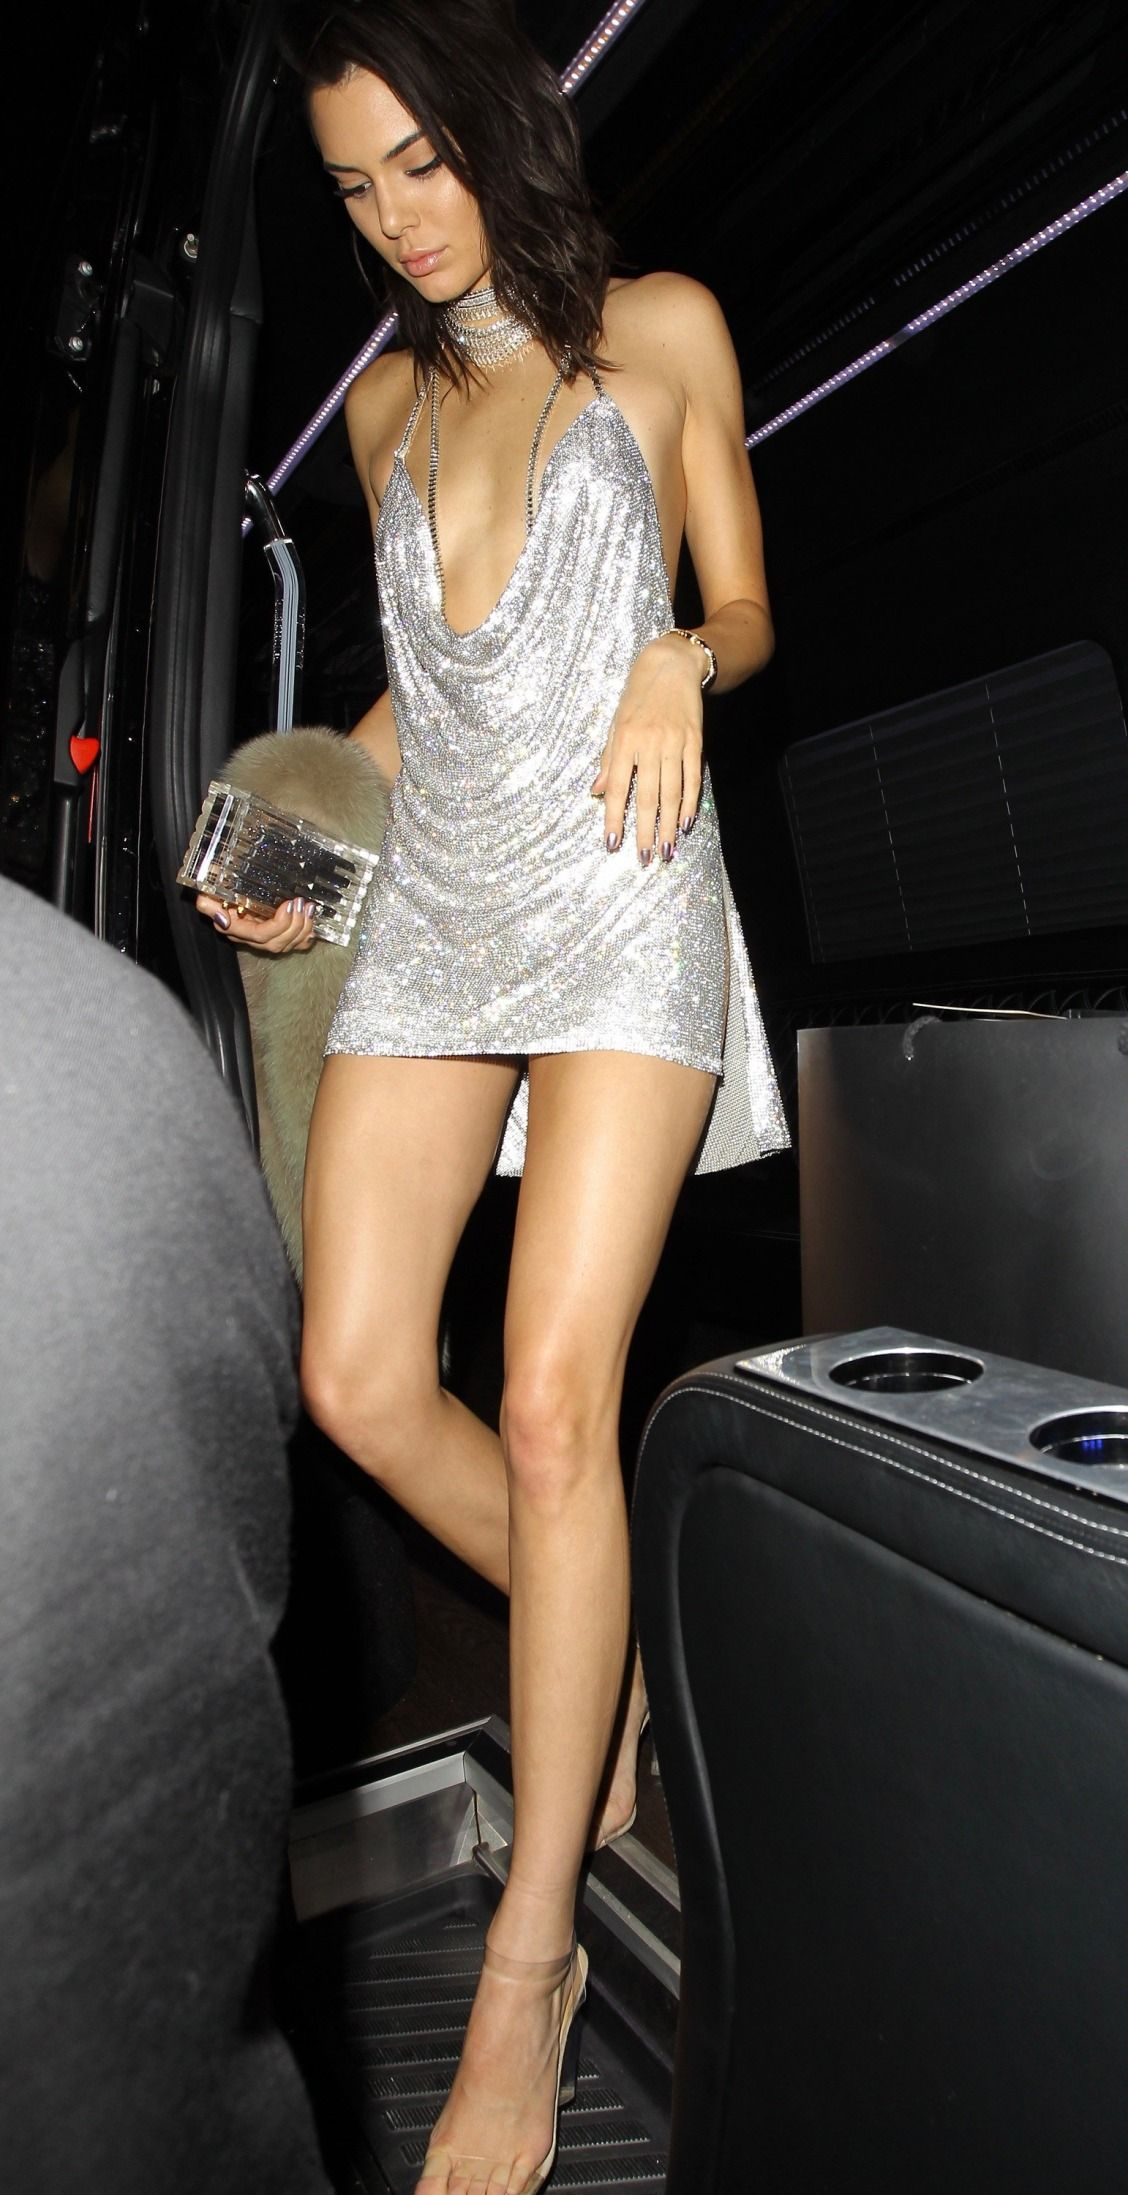 Kendall Jenner S 21st Birthday Dress By Labourjoisie